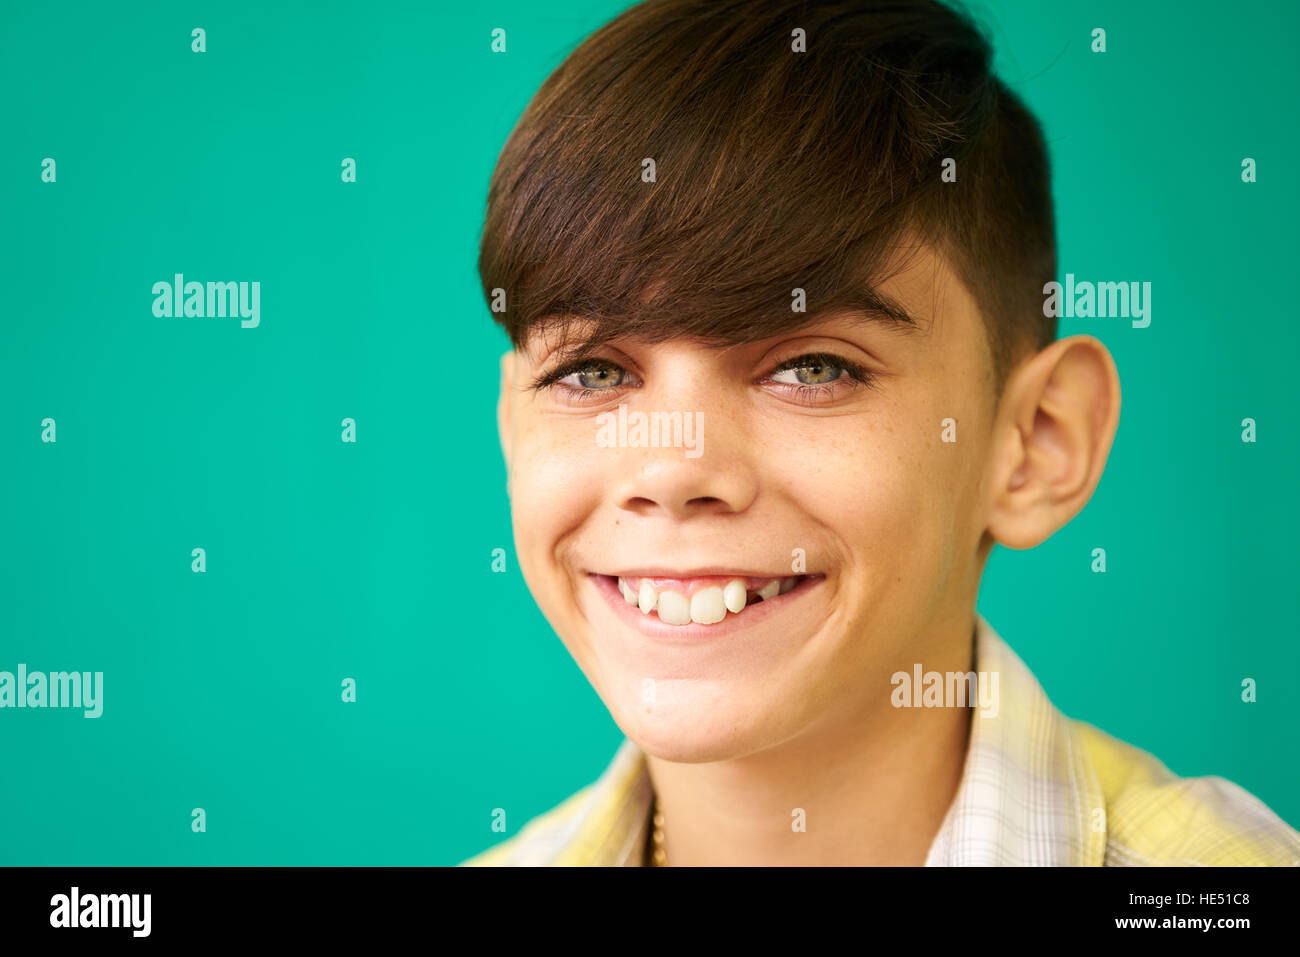 Real Cuban people and feelings, portrait of happy young latino kid from Havana, Cuba looking at camera and smiling. - Stock Image